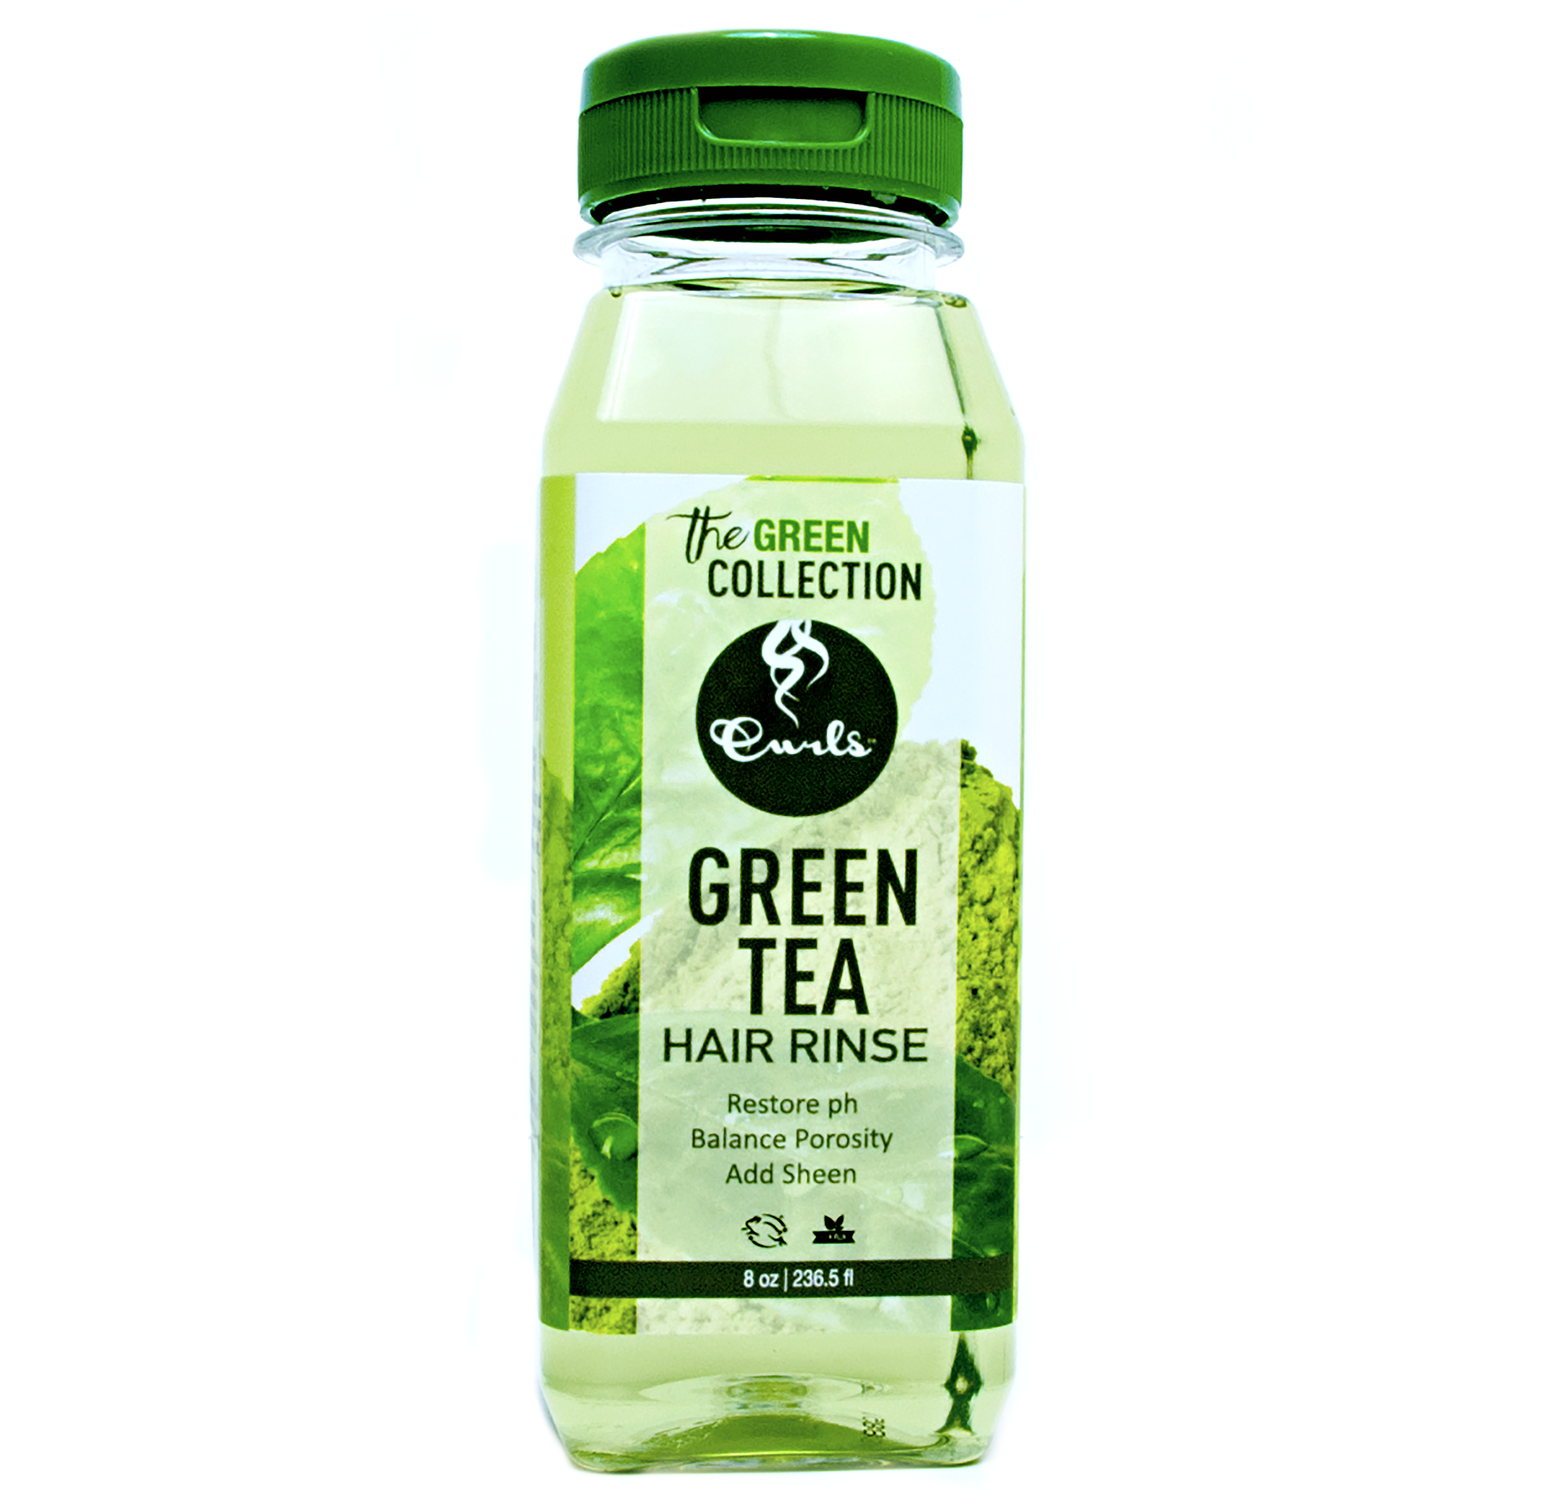 Green Tea Hair Rinse